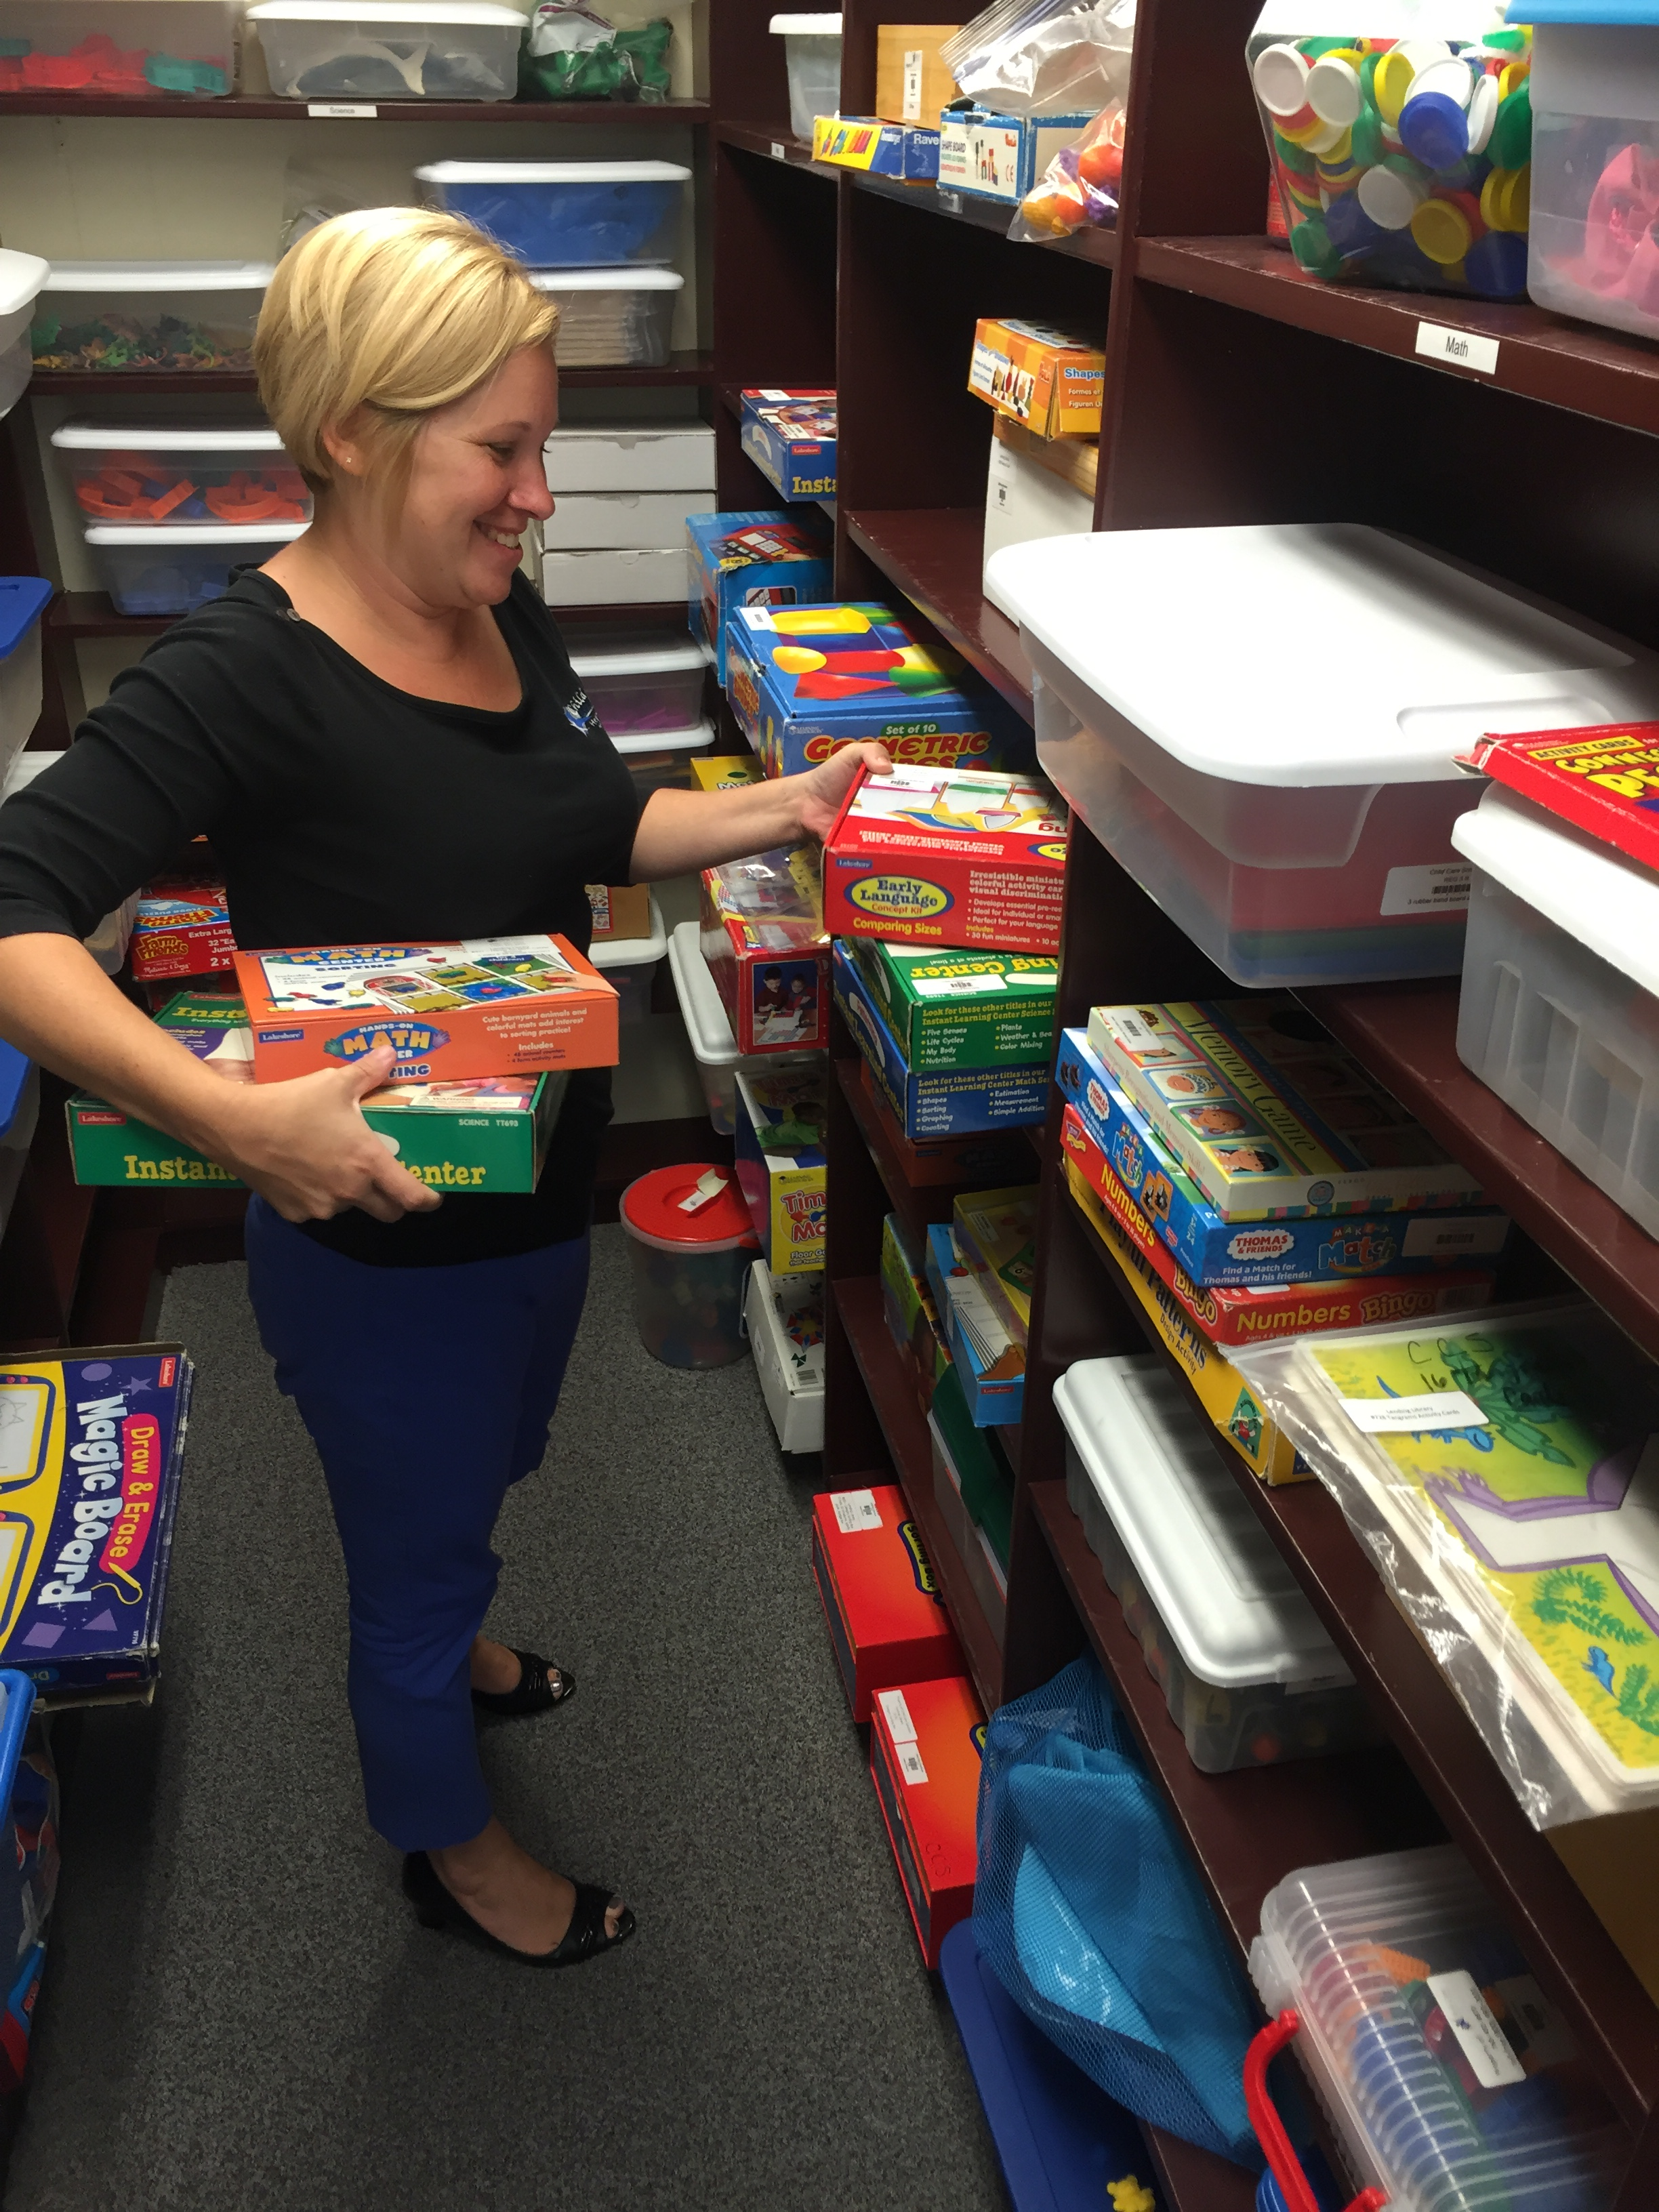 Michelle Kanable, director of Child Care Solutions, organizes the lending library.